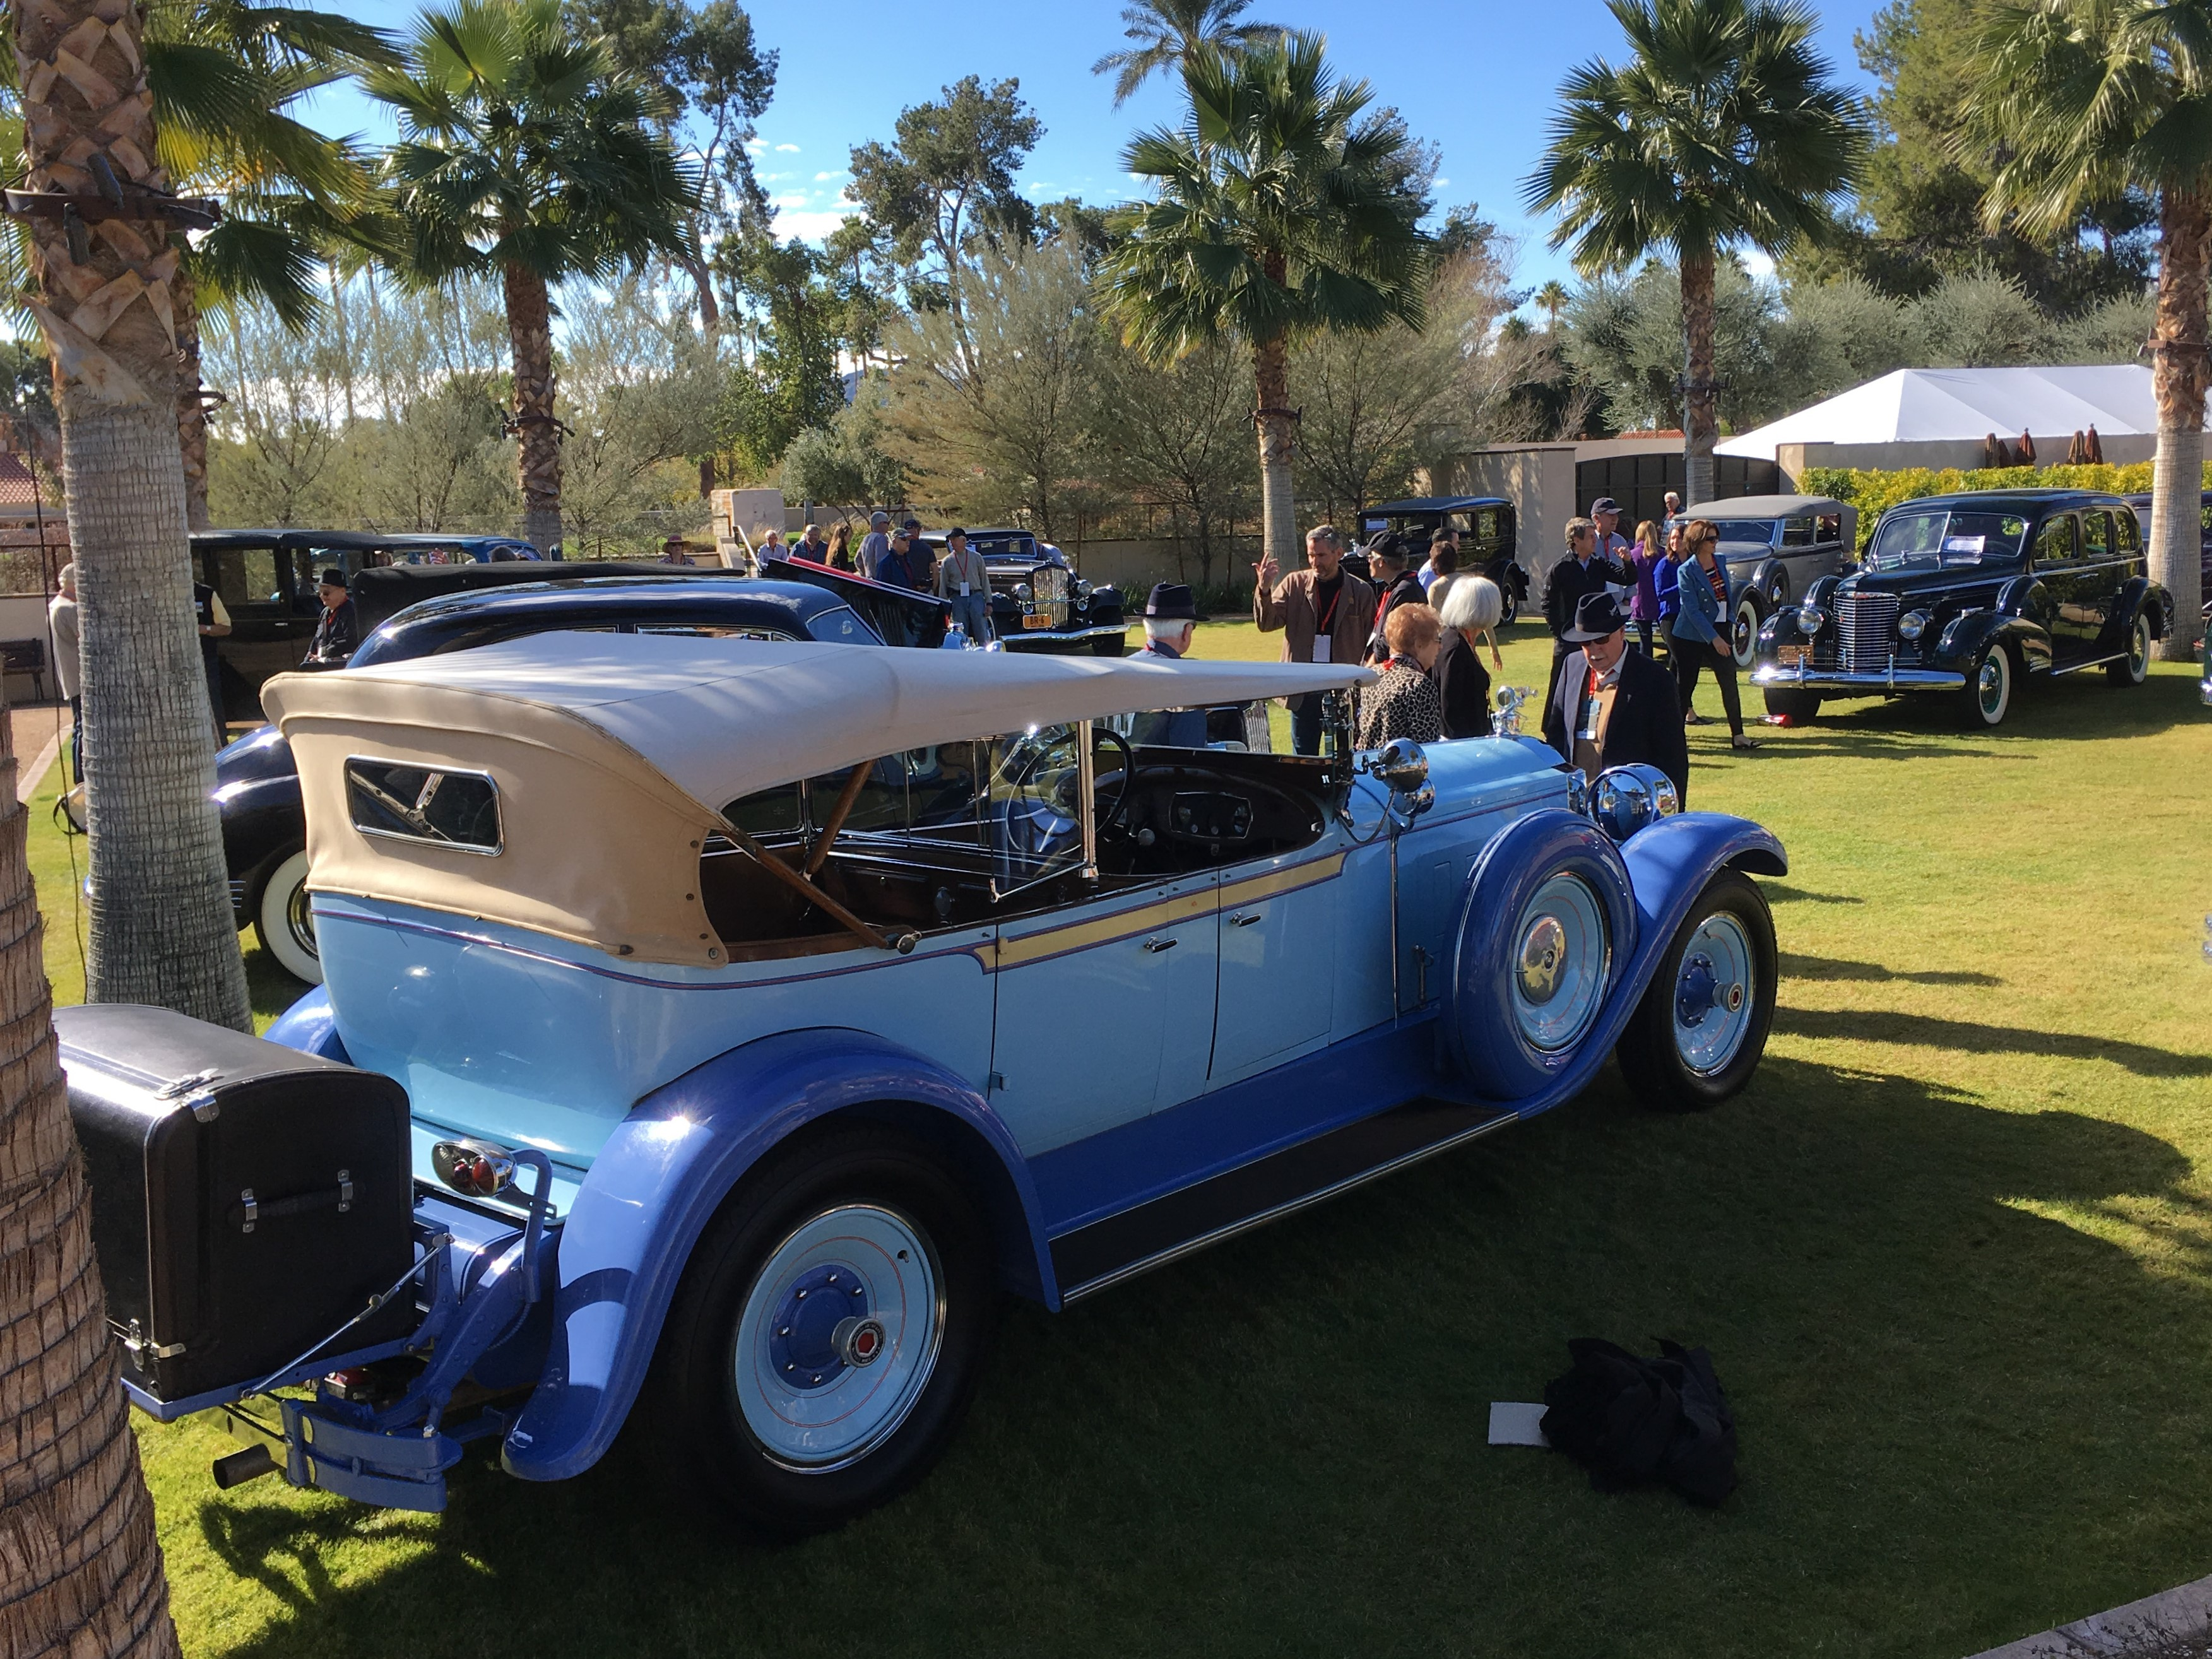 CCCA Grand Classic Concours provided world-class car viewing in an intimate setting.